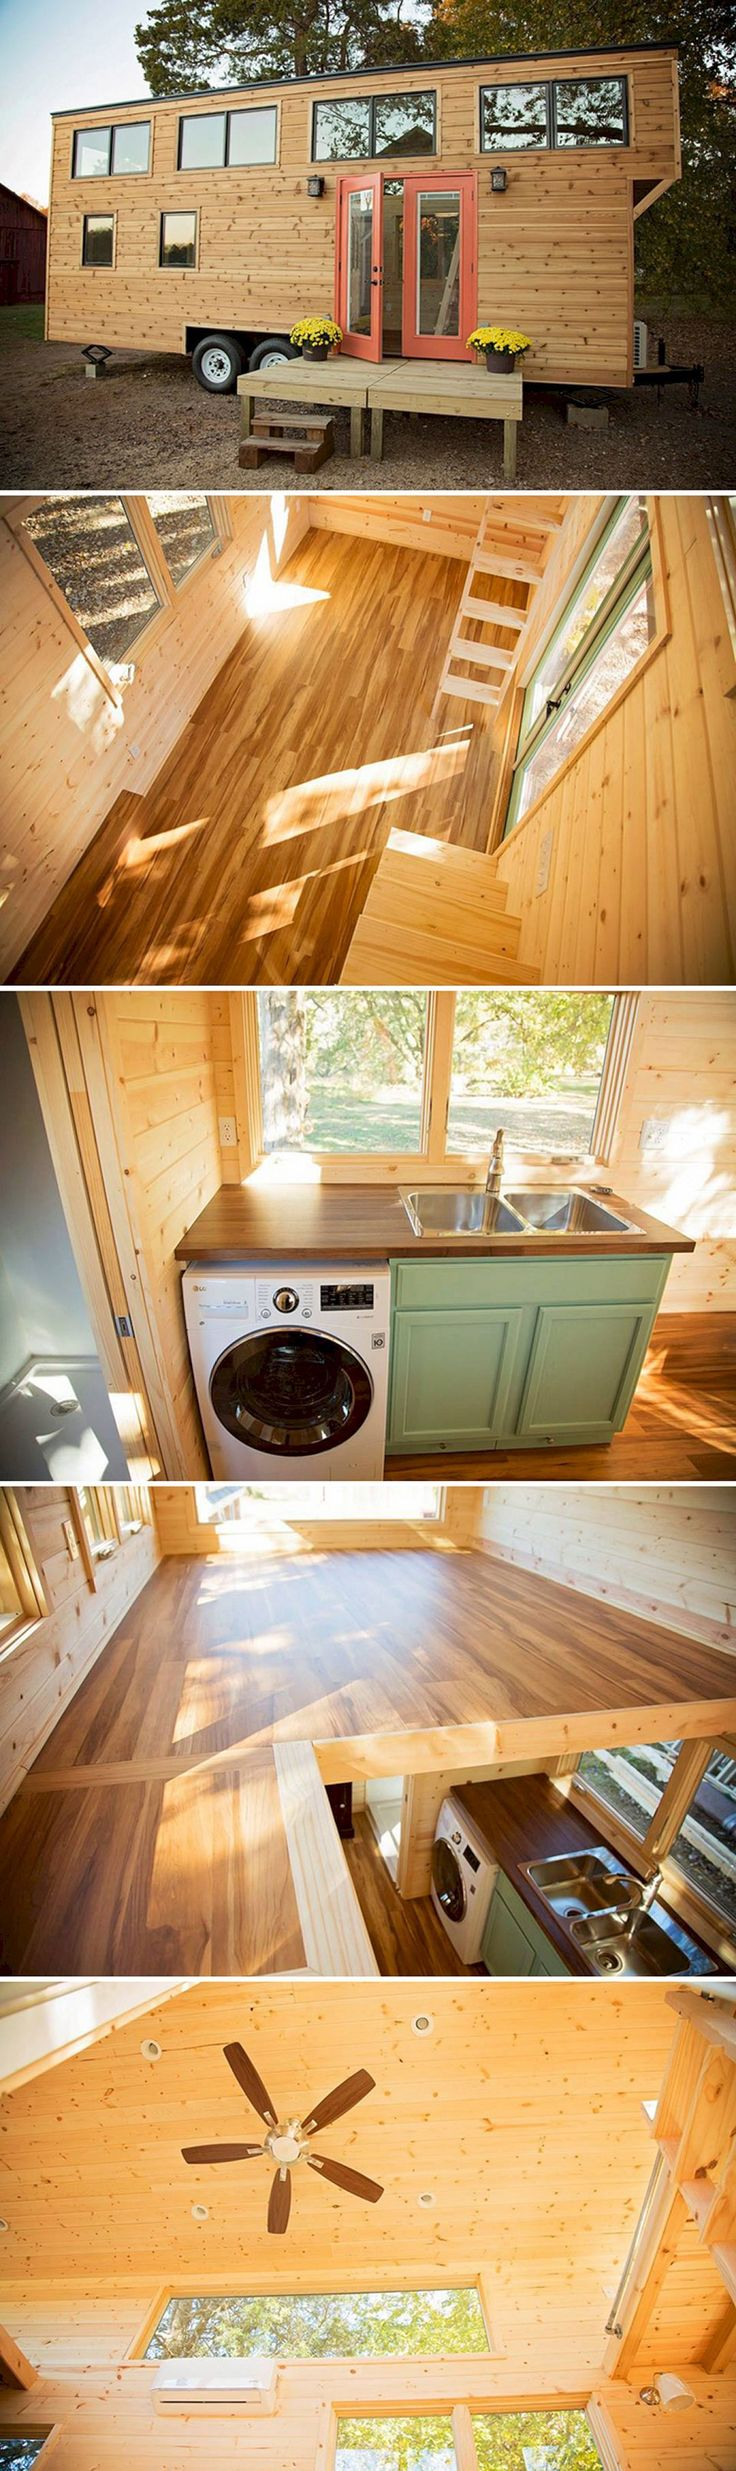 27 best Information. Blog. JCS images on Pinterest | Cabin kits ...